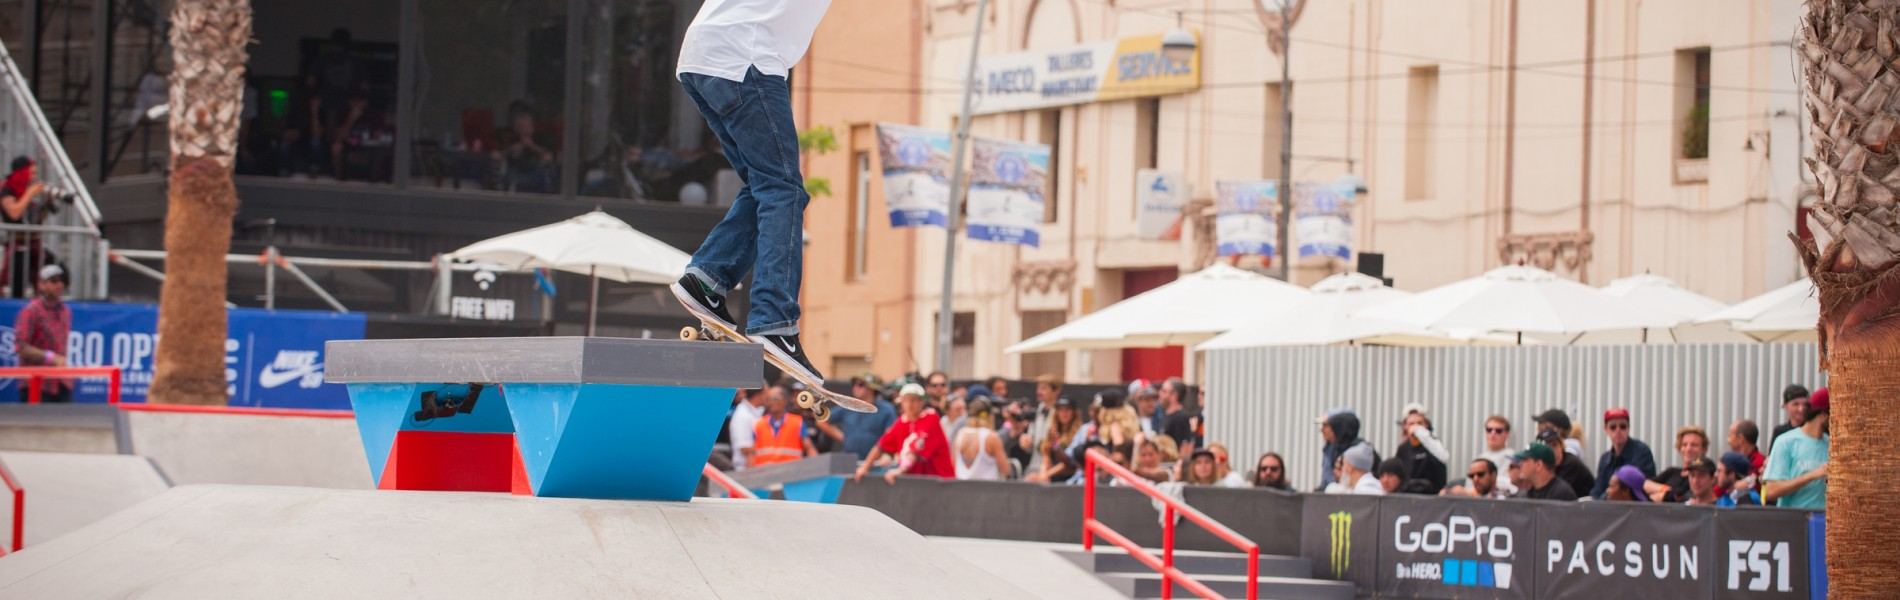 Monster athletes compete in the 2016 Pro Open in Barcelona Spain, Finals , Ishod Wair